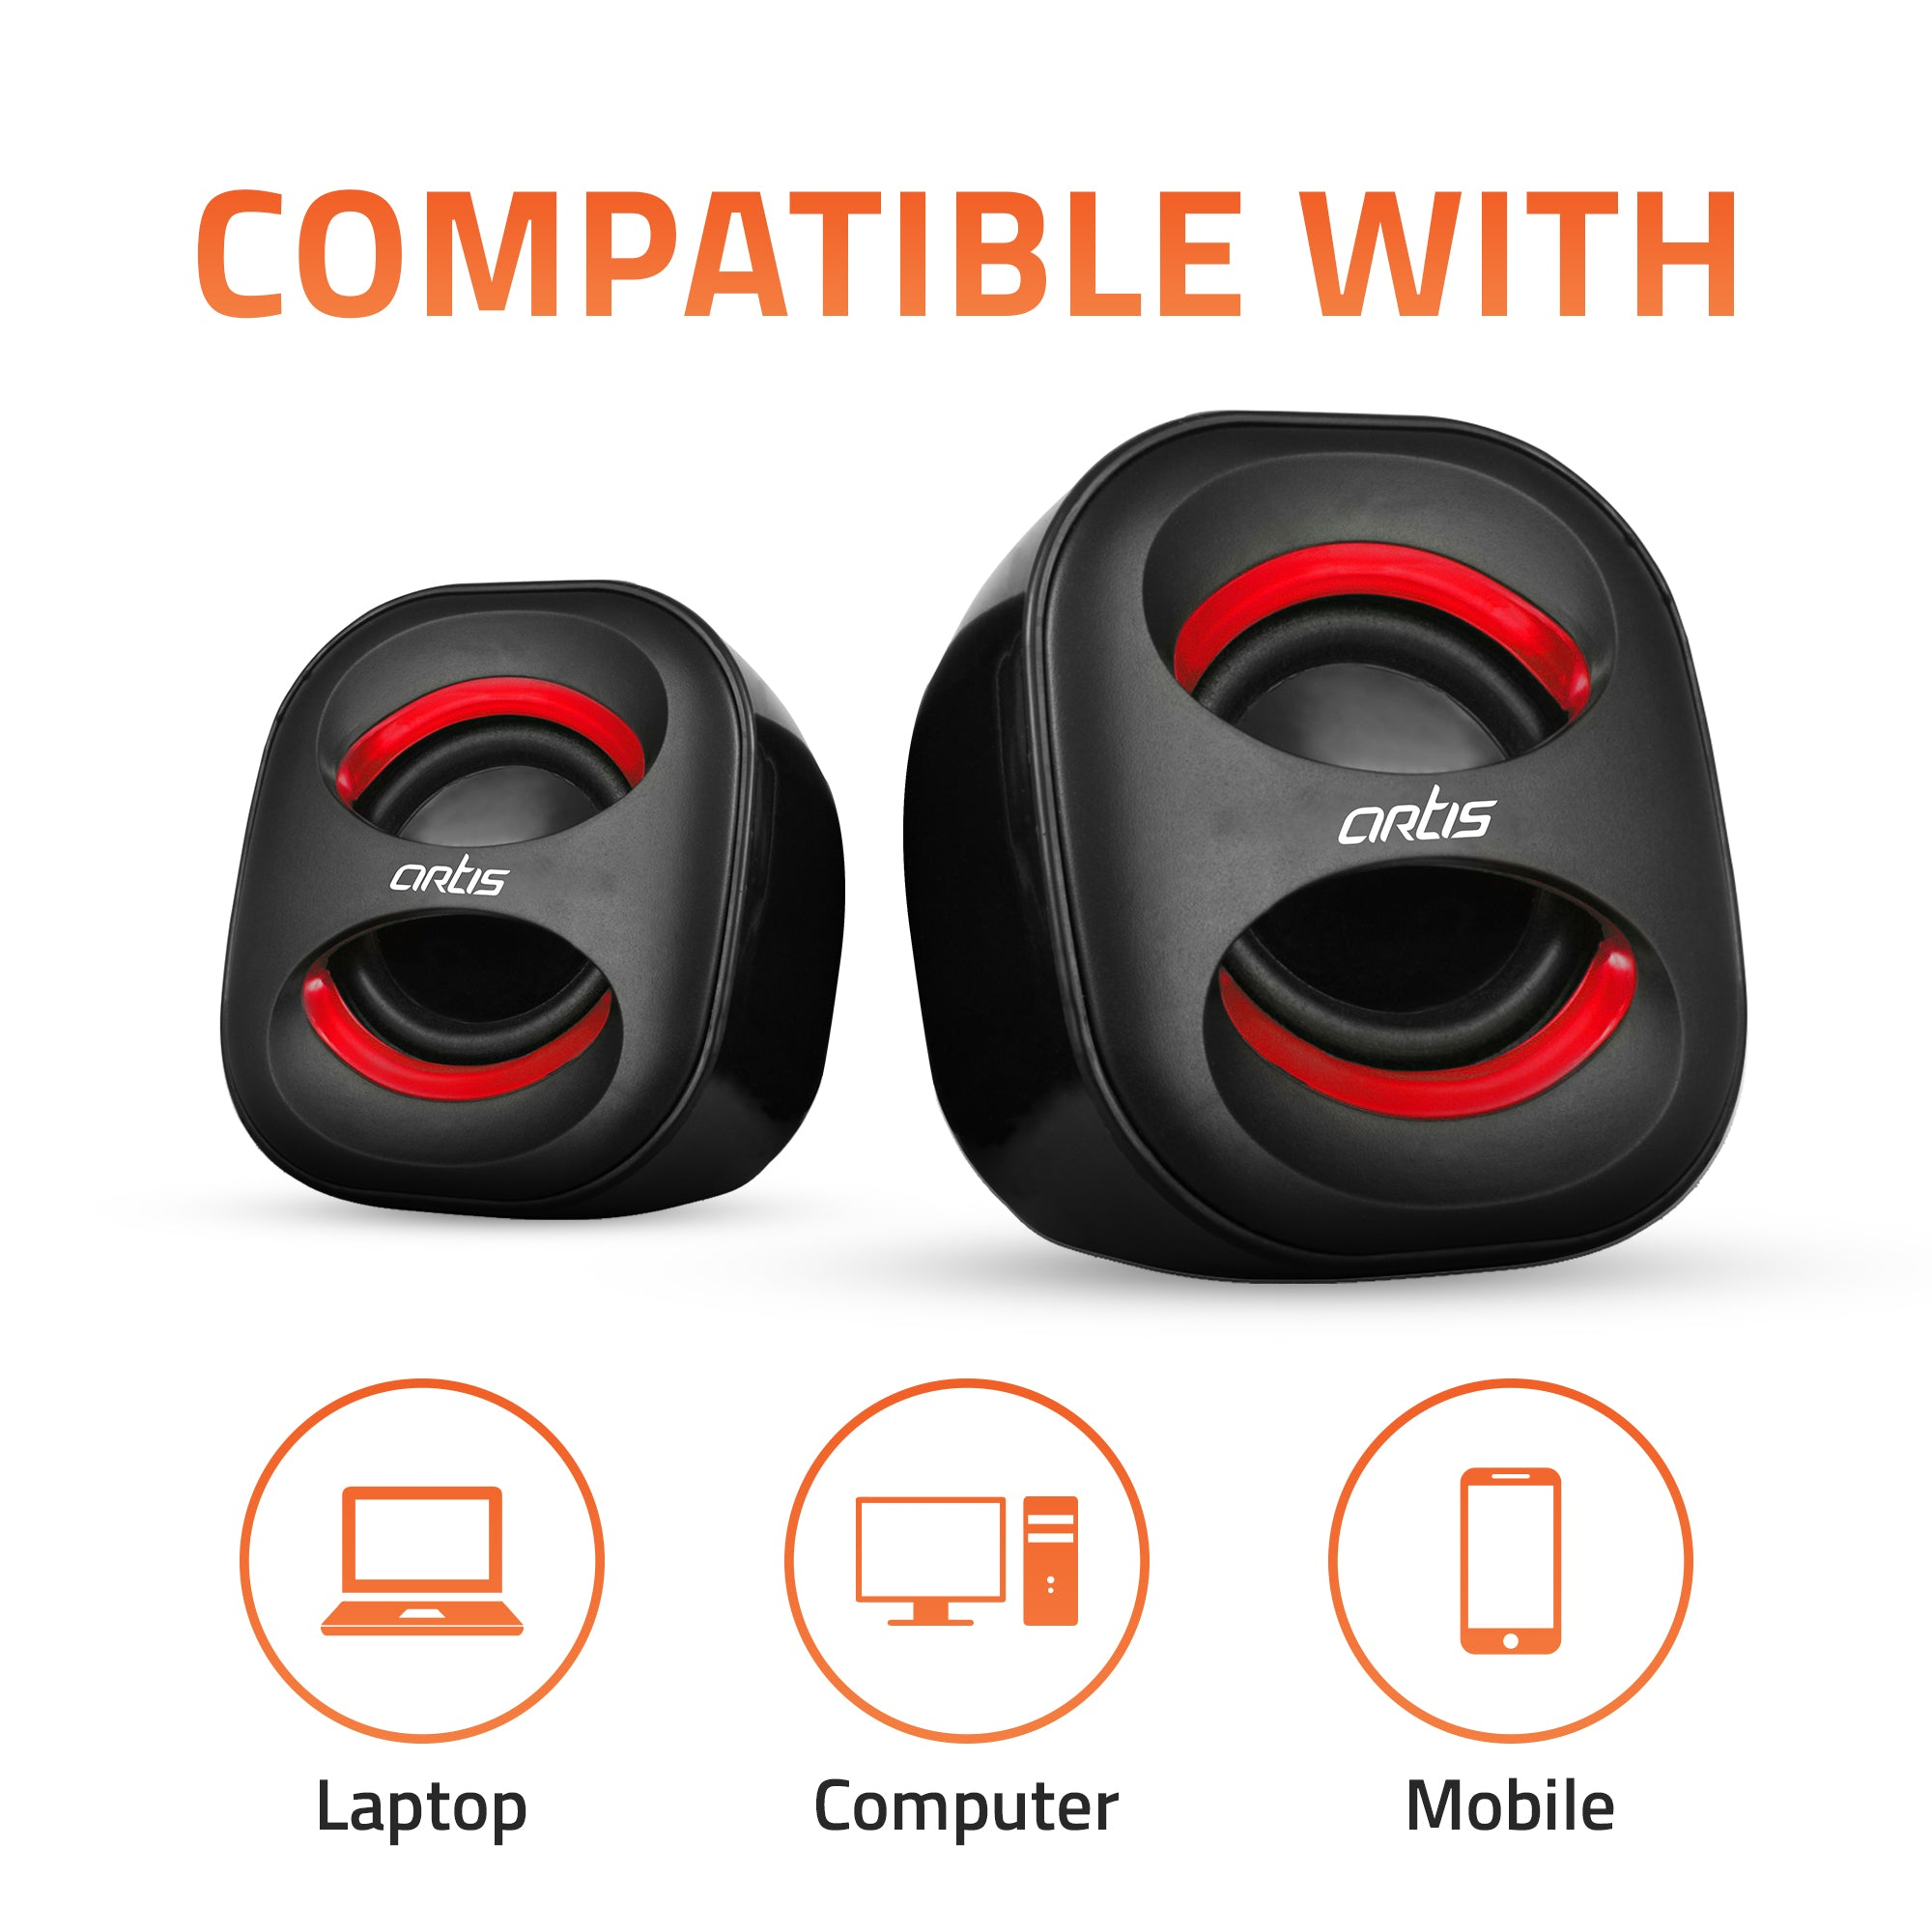 4W RMS Artis Mini 2.0 USB Speakers Compatible with Laptop, Computer & Mobile